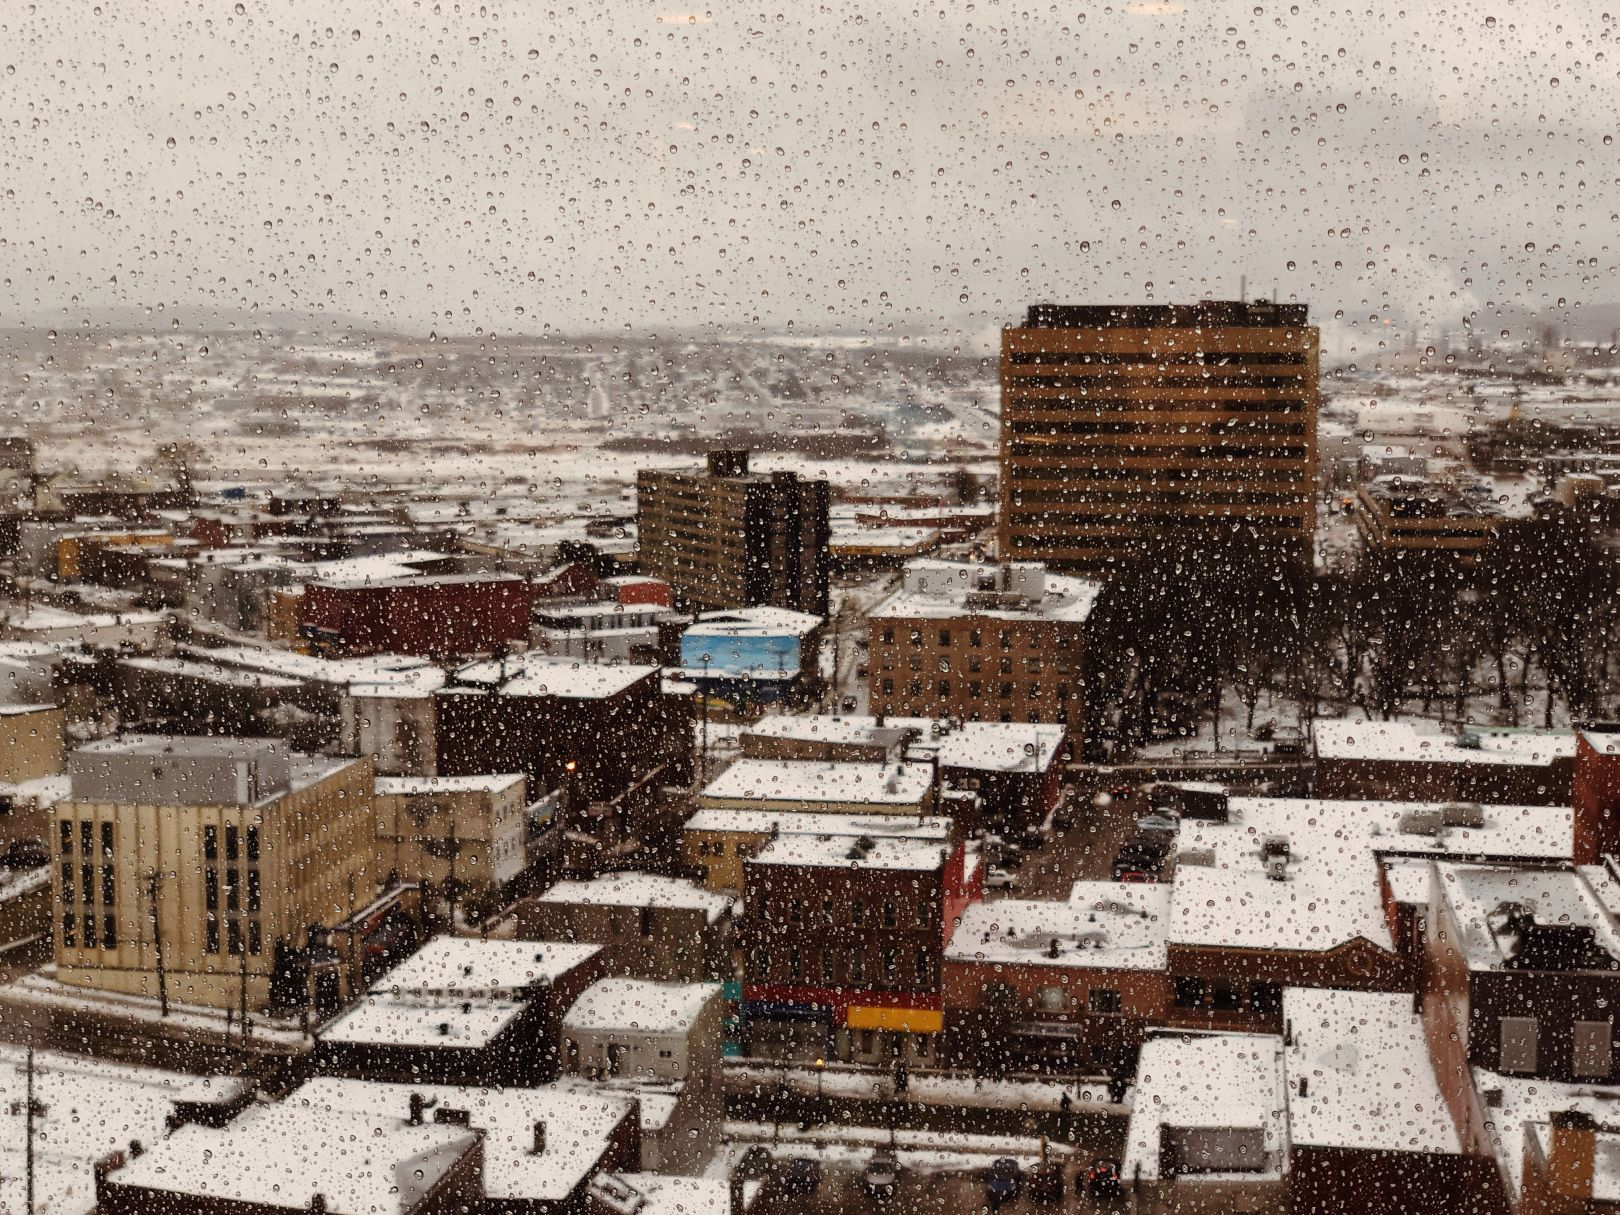 A photo of Looking Out On A Messy Saint john